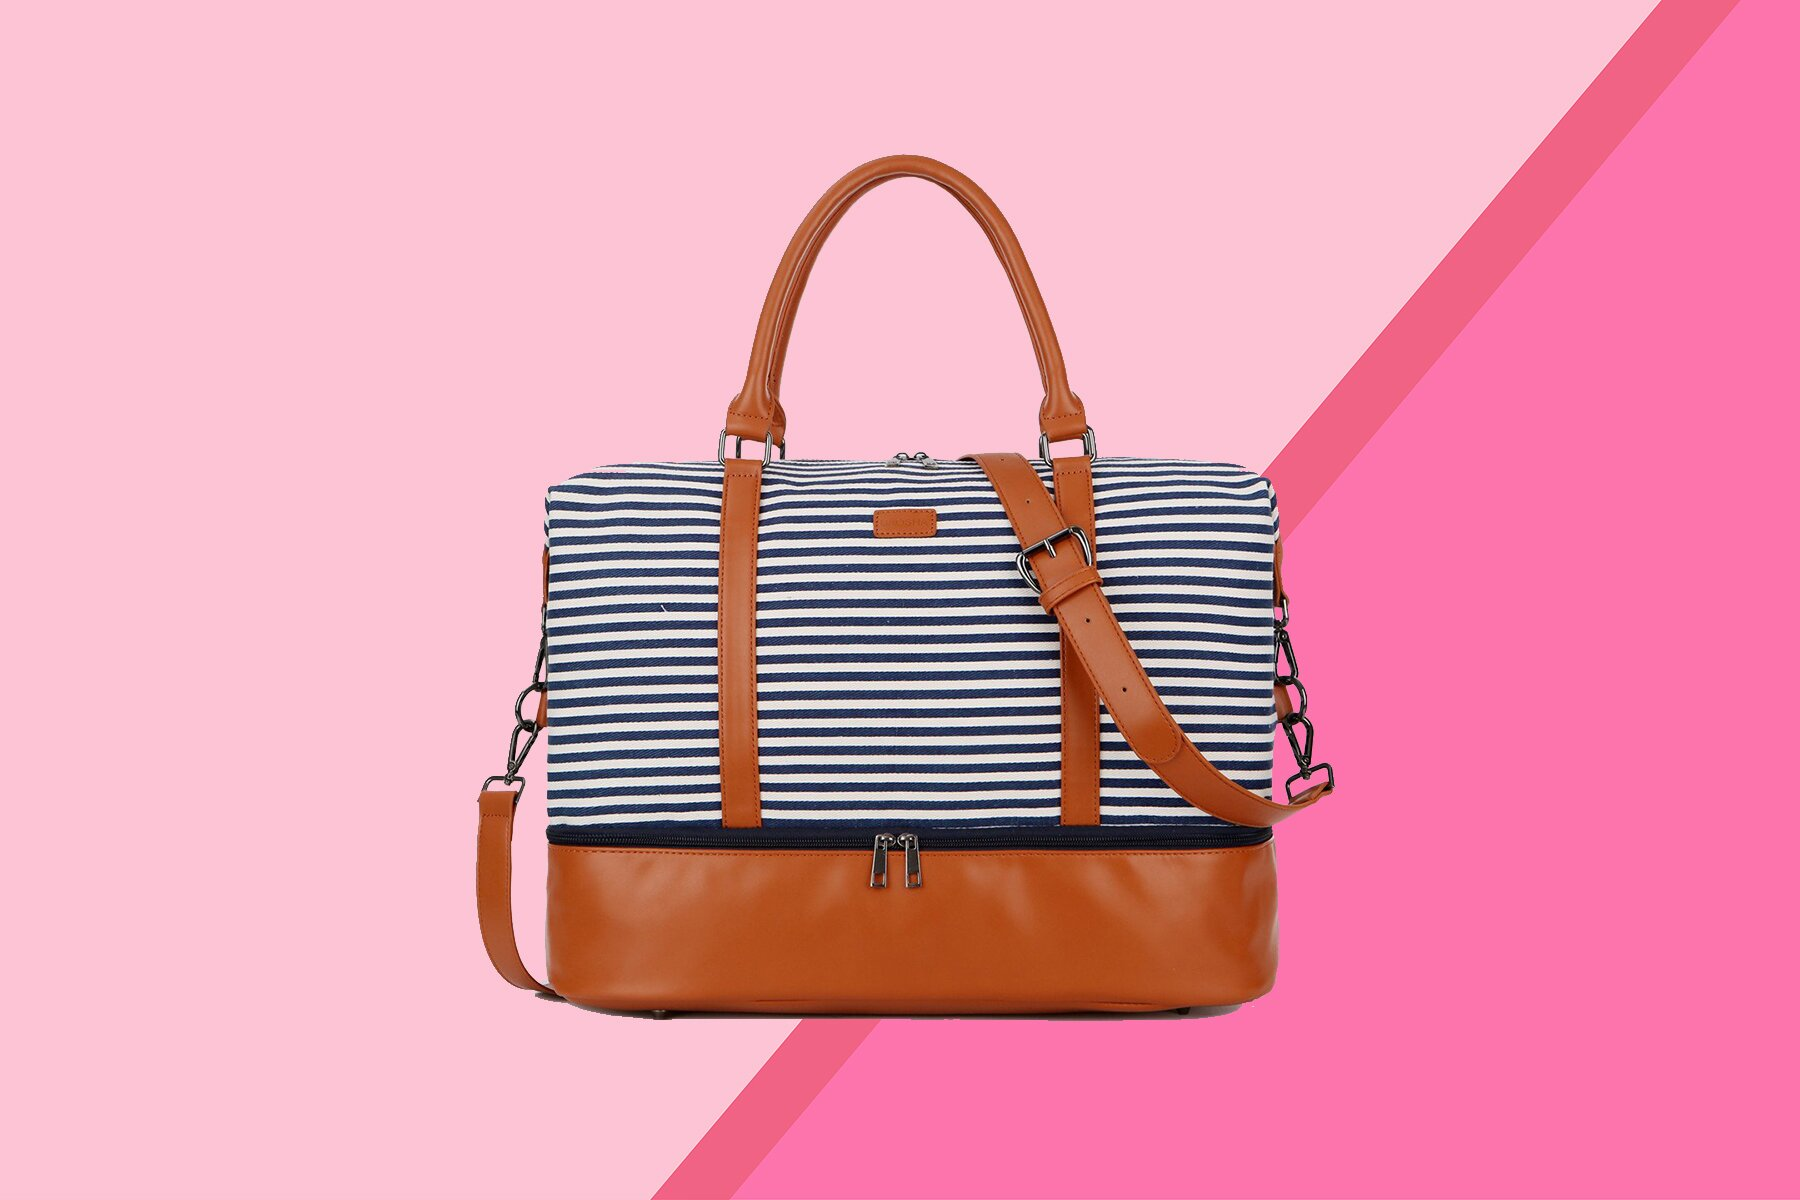 68089d5ede8f 8 Stylish Weekender Bags That Are Perfect for Quick Getaways—All Under $100